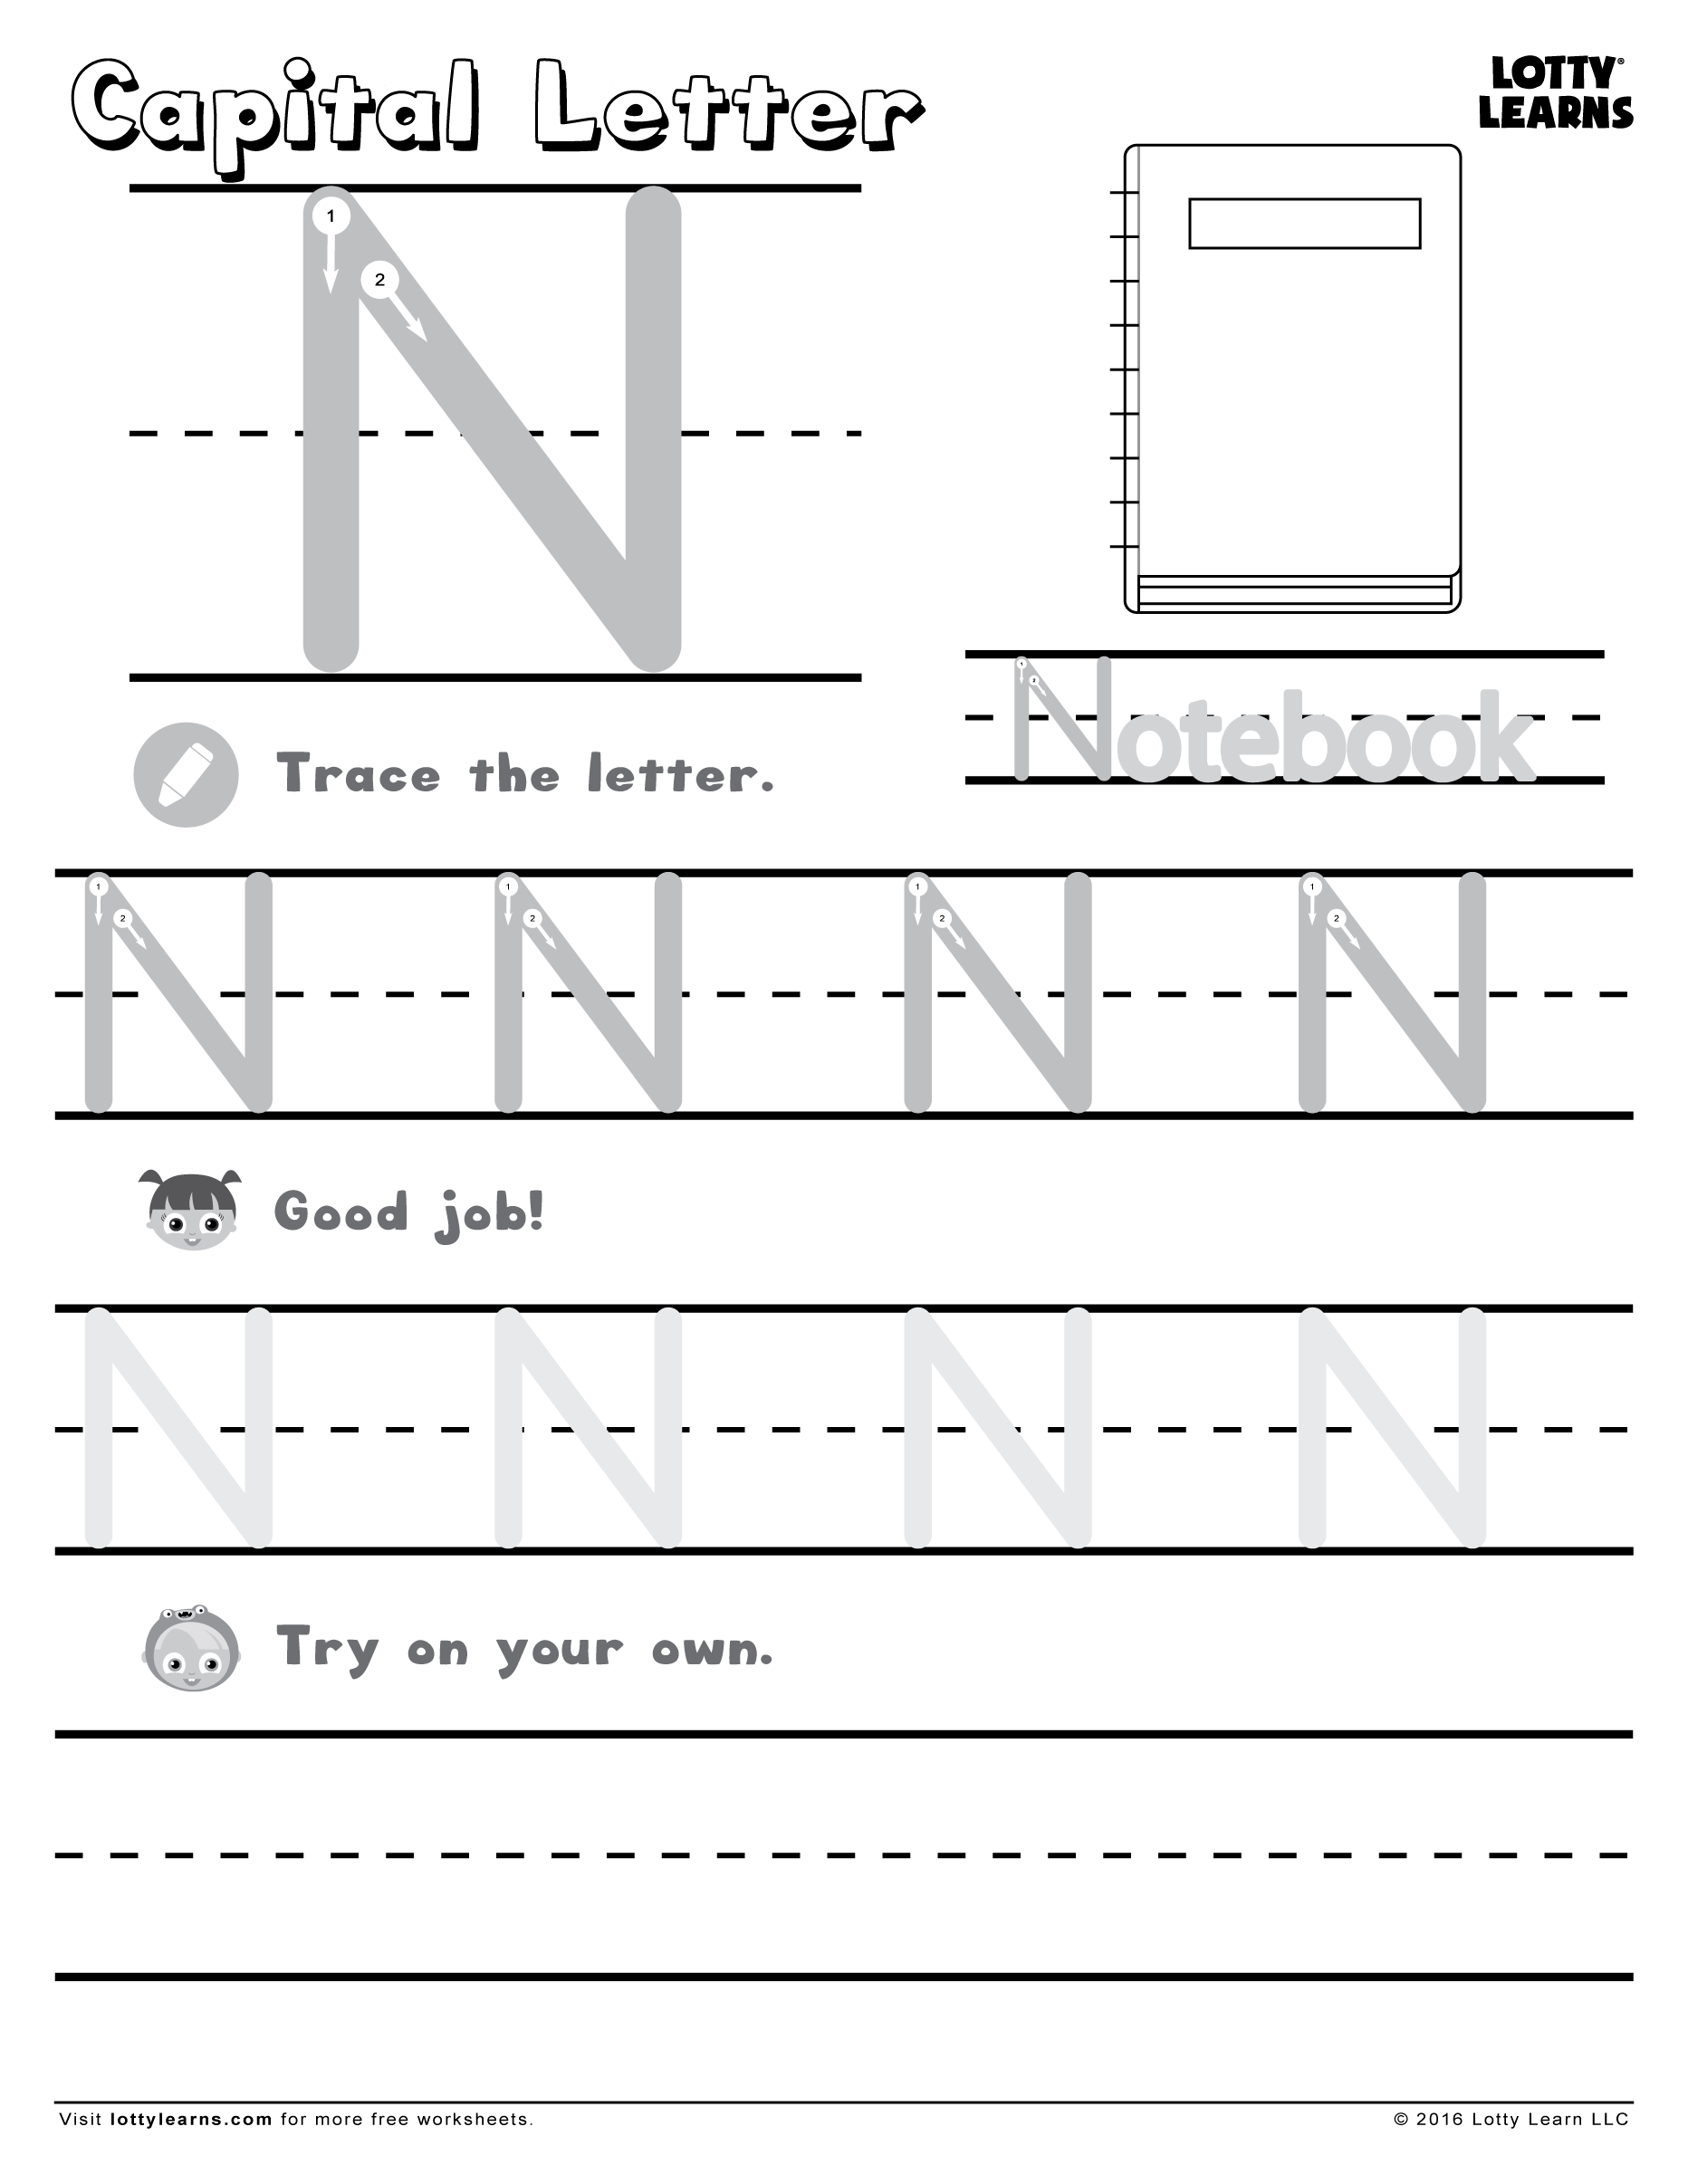 Capital Letter N Lotty Learns Letter Writing Practice Alphabet Practice Sheets Alphabet Practice